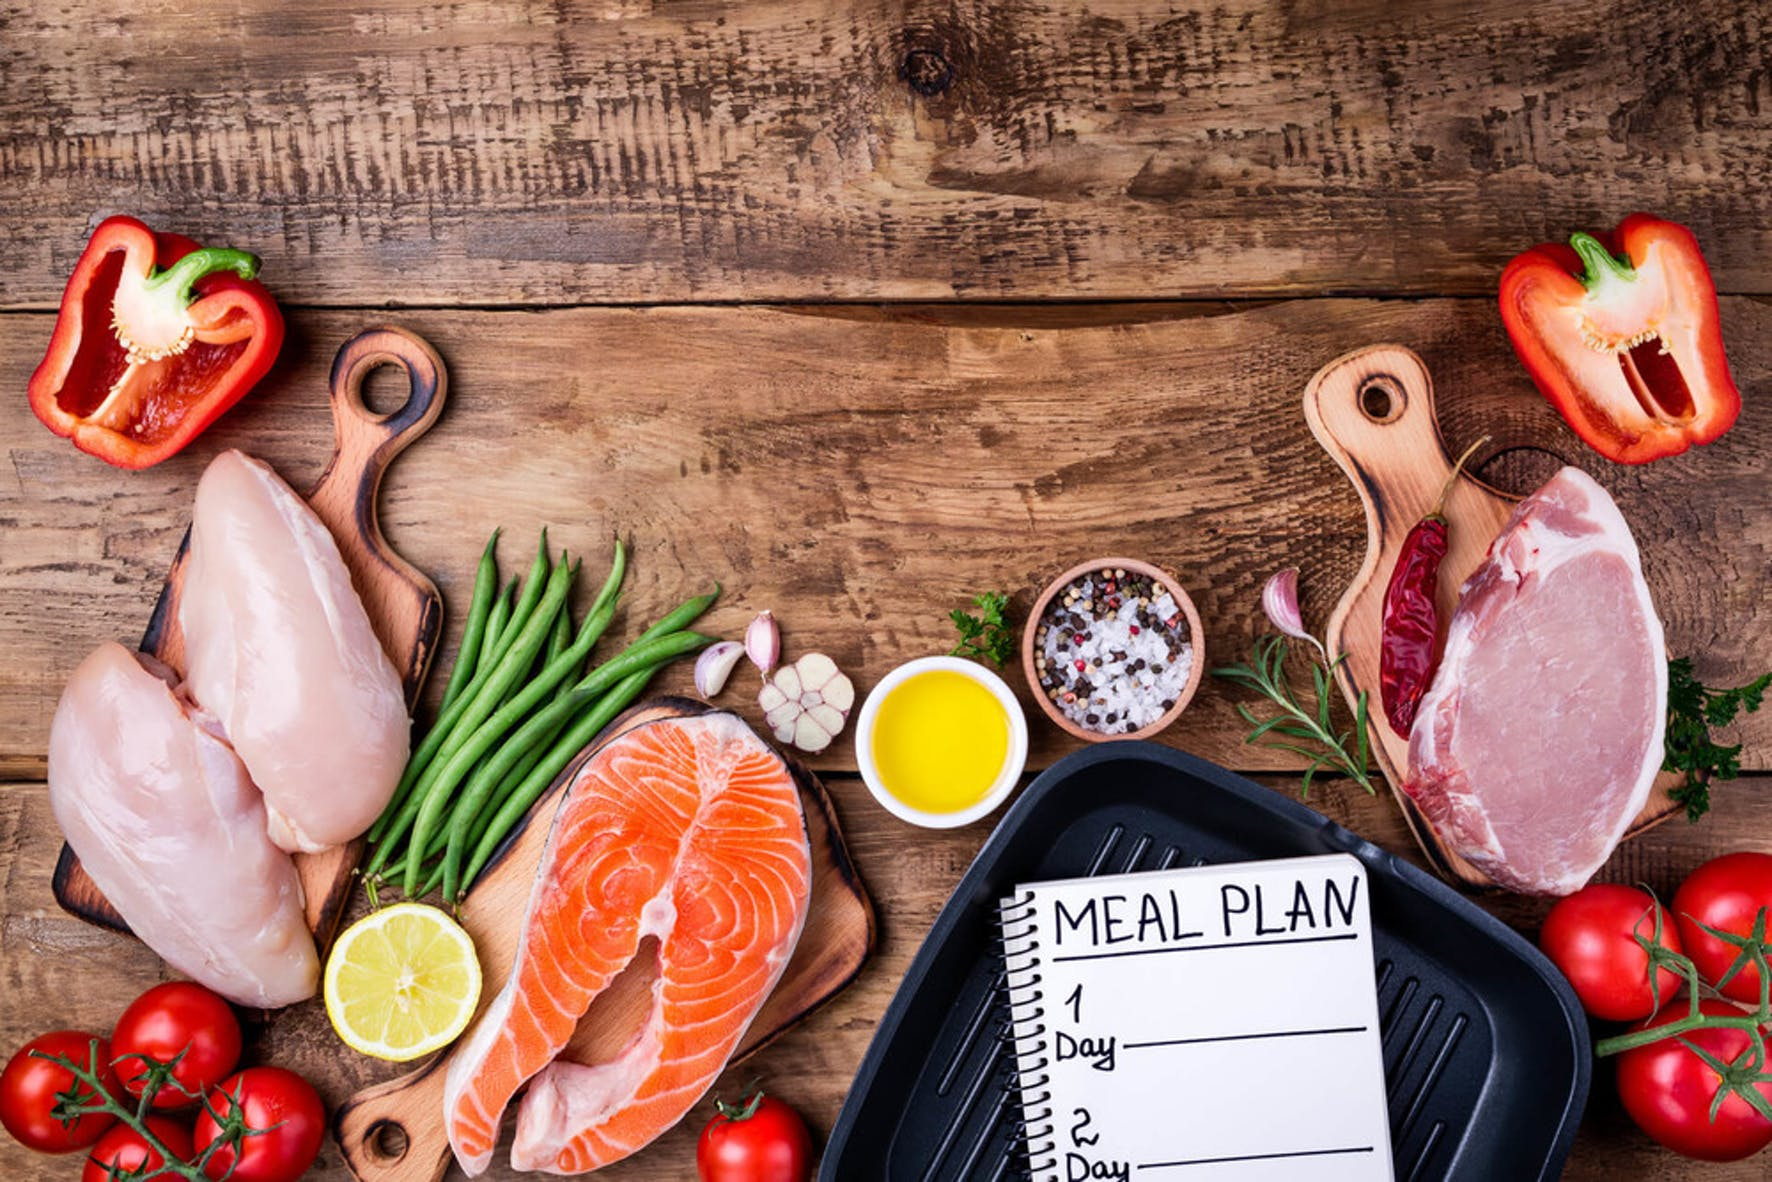 How to save money on lunch: createa a simple meal plan